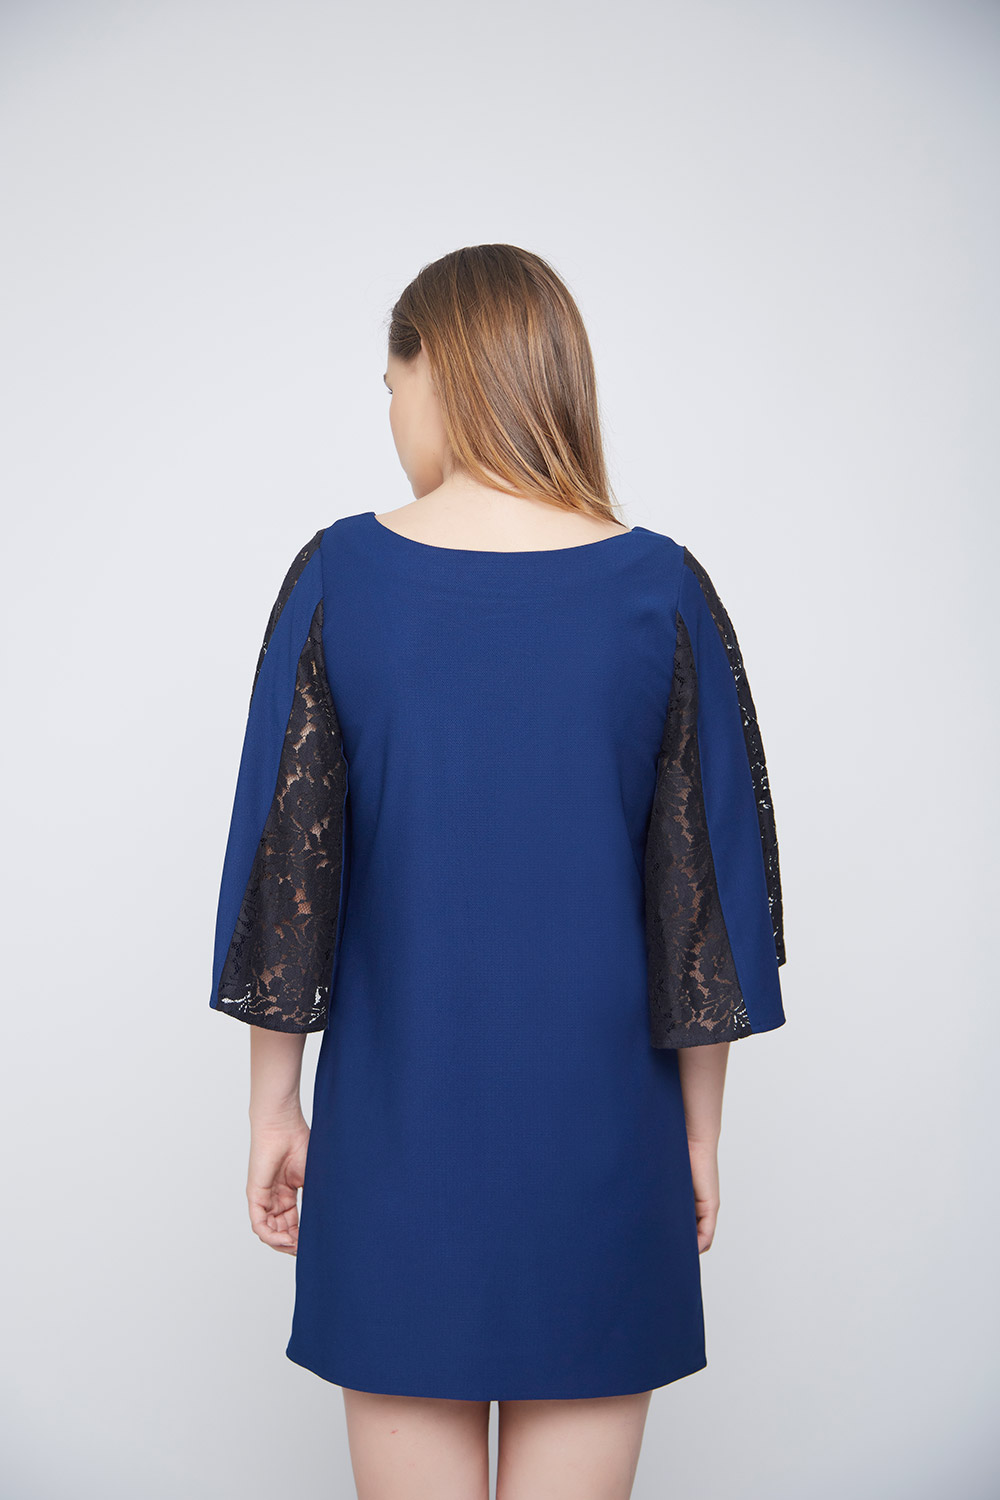 Blue Dress Black Net Pannel Sleeves -3